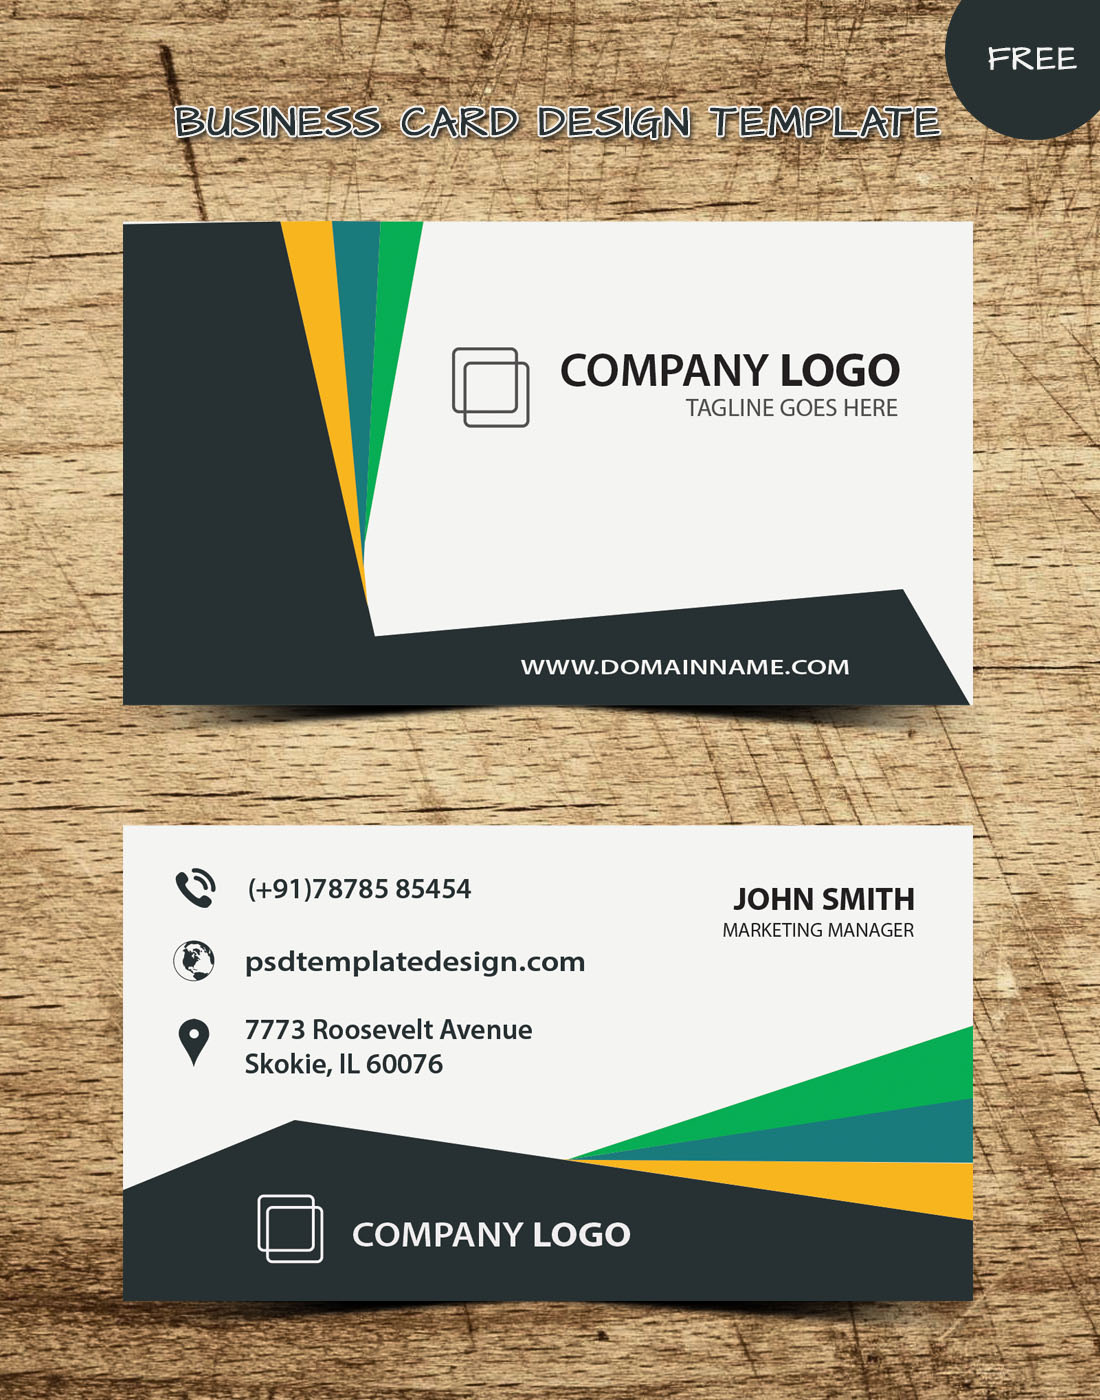 New Business Card templates